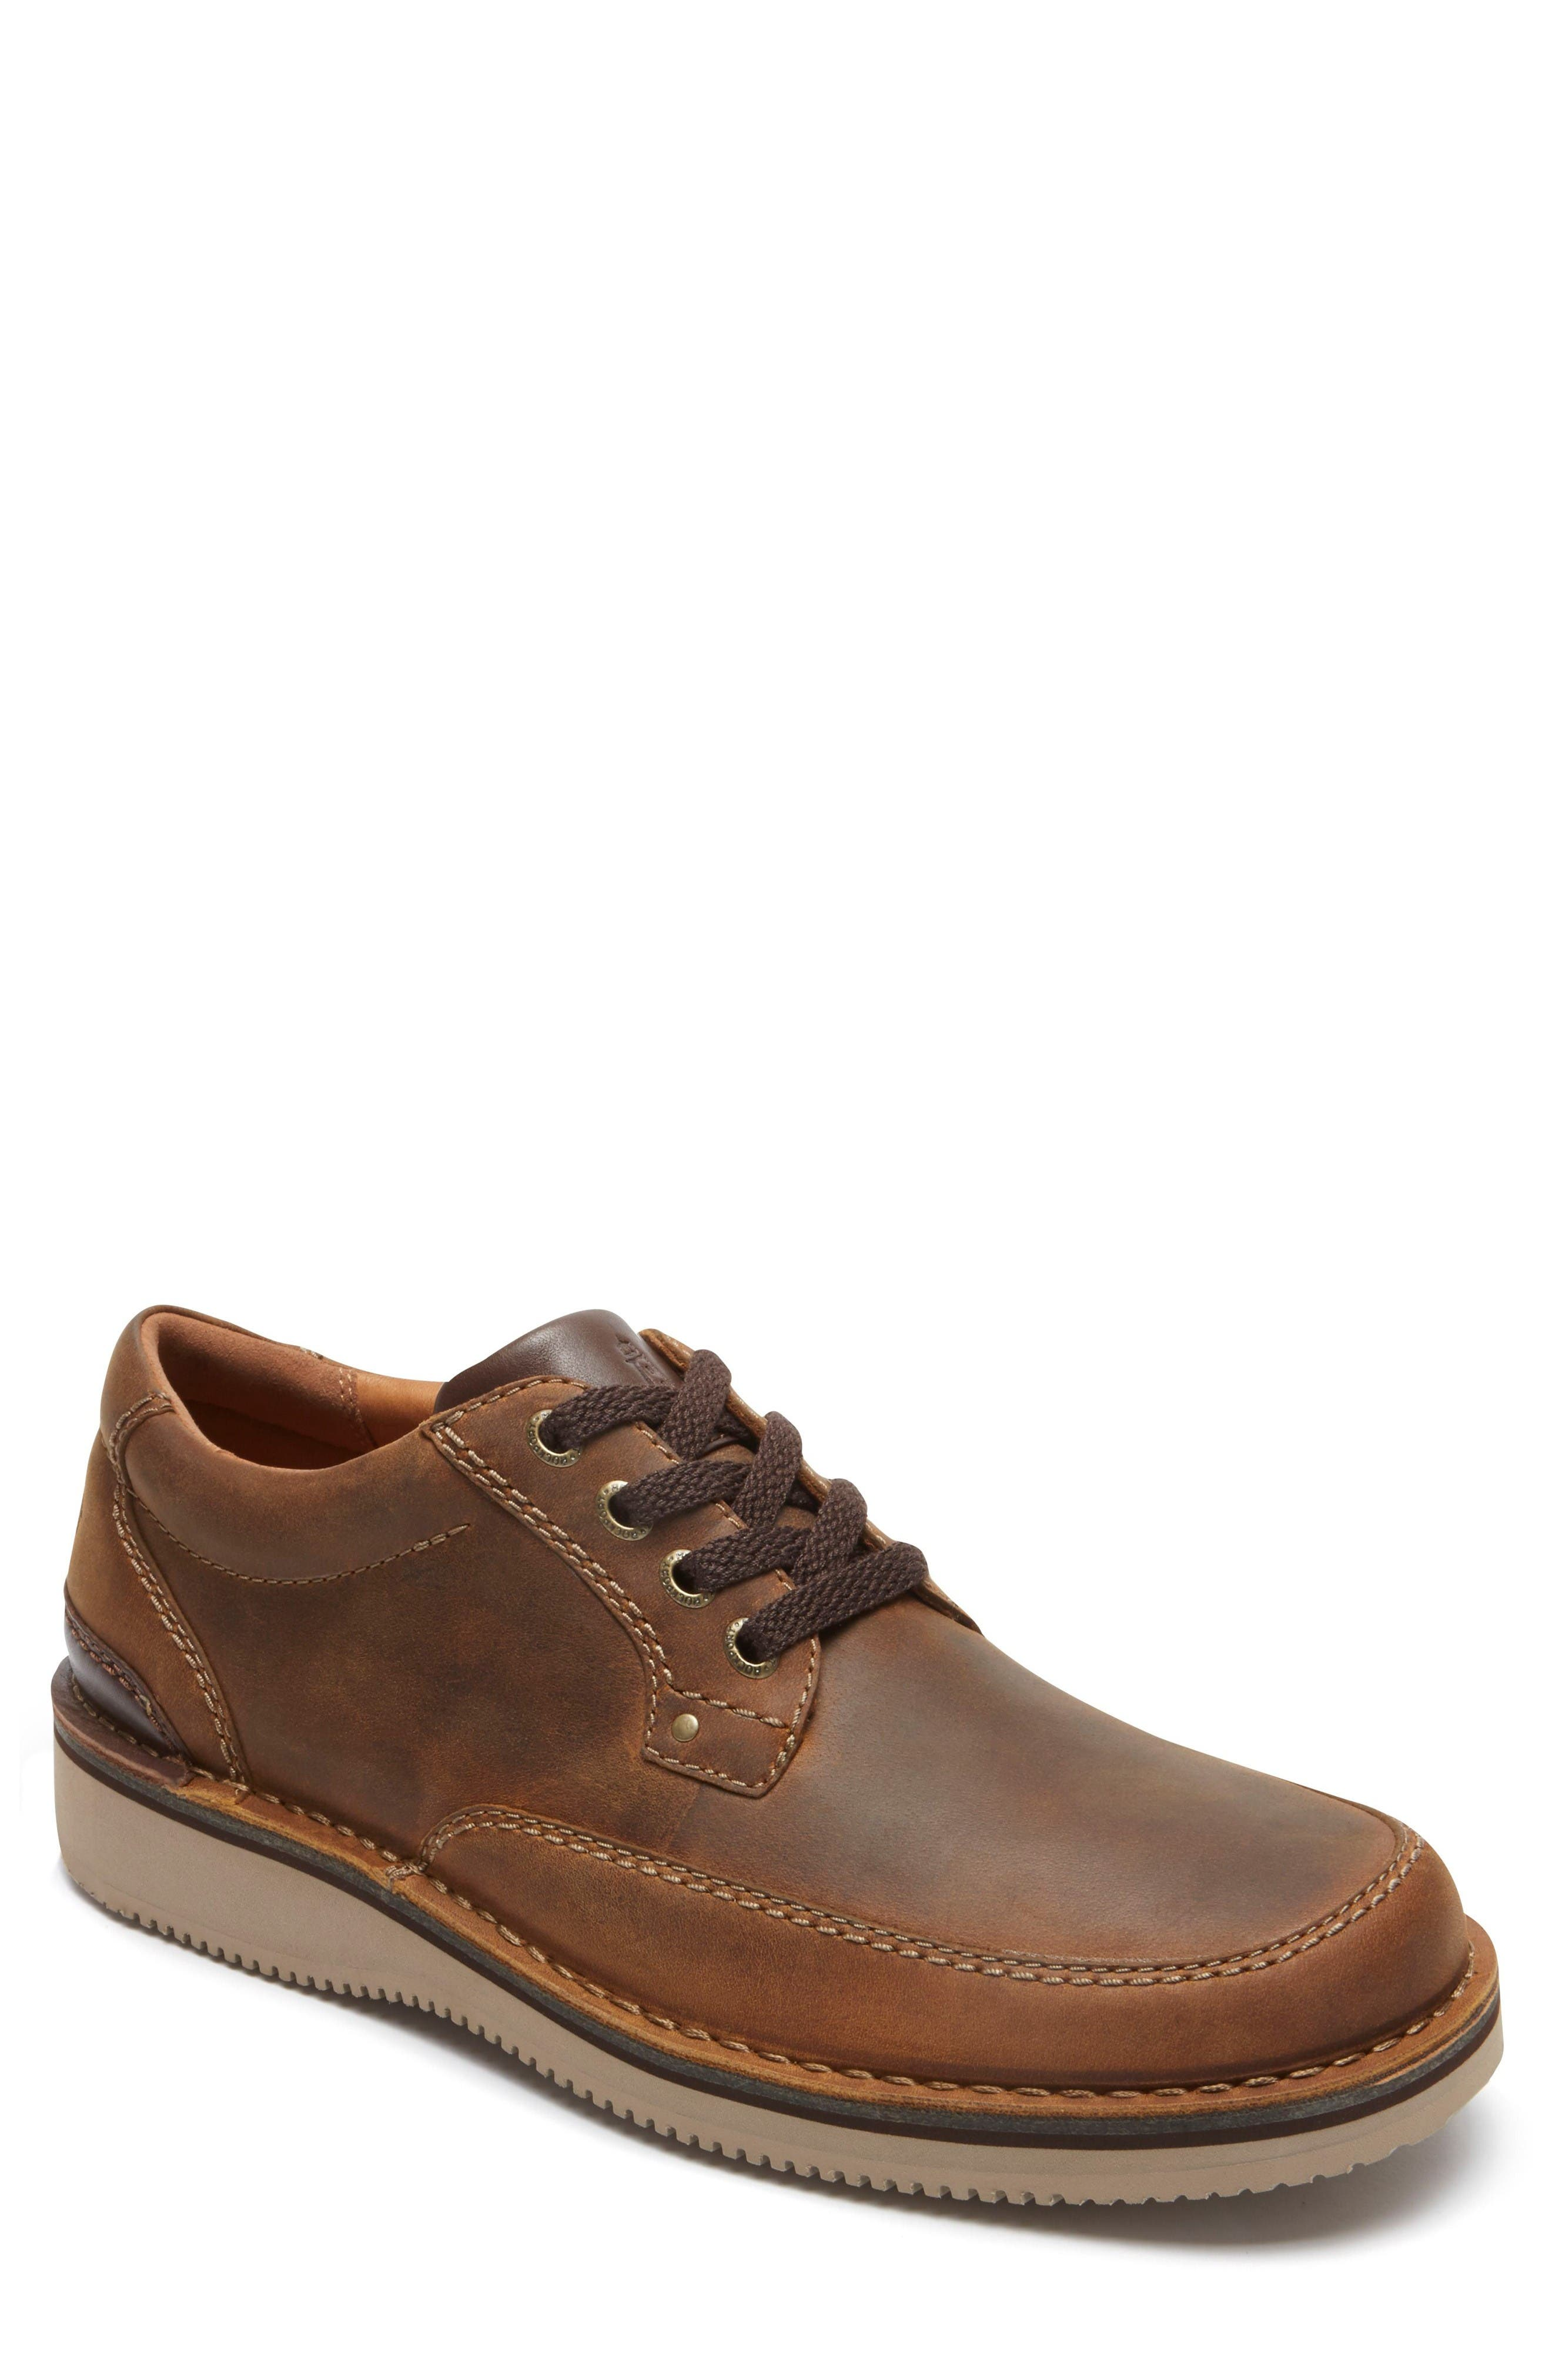 Prestige Point Mudguard Oxford,                         Main,                         color, Beeswax Leather